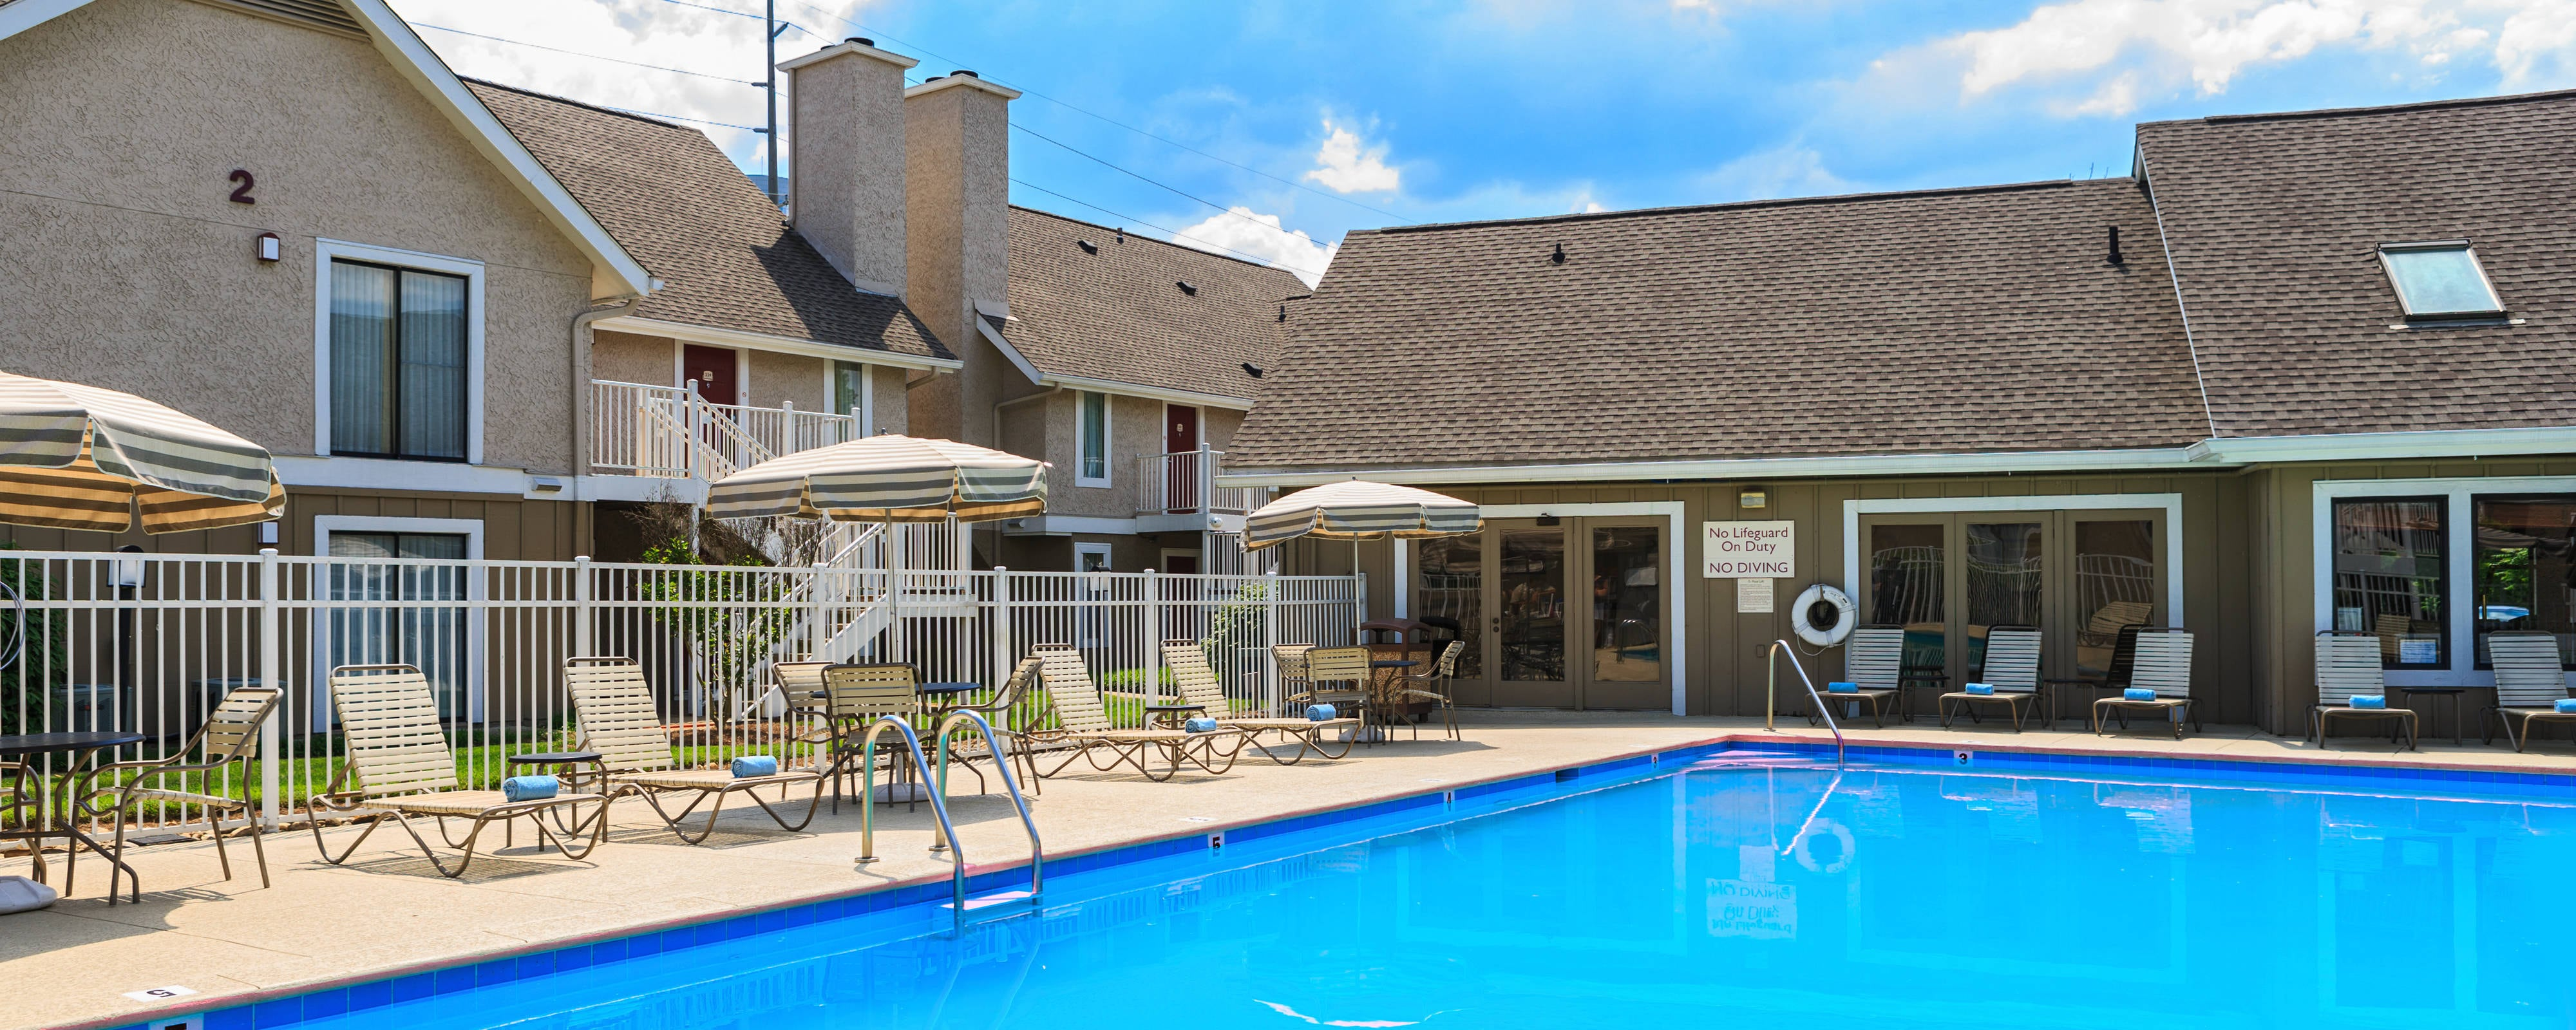 Residence Inn Nashville Airport Hotel Outdoor Pool